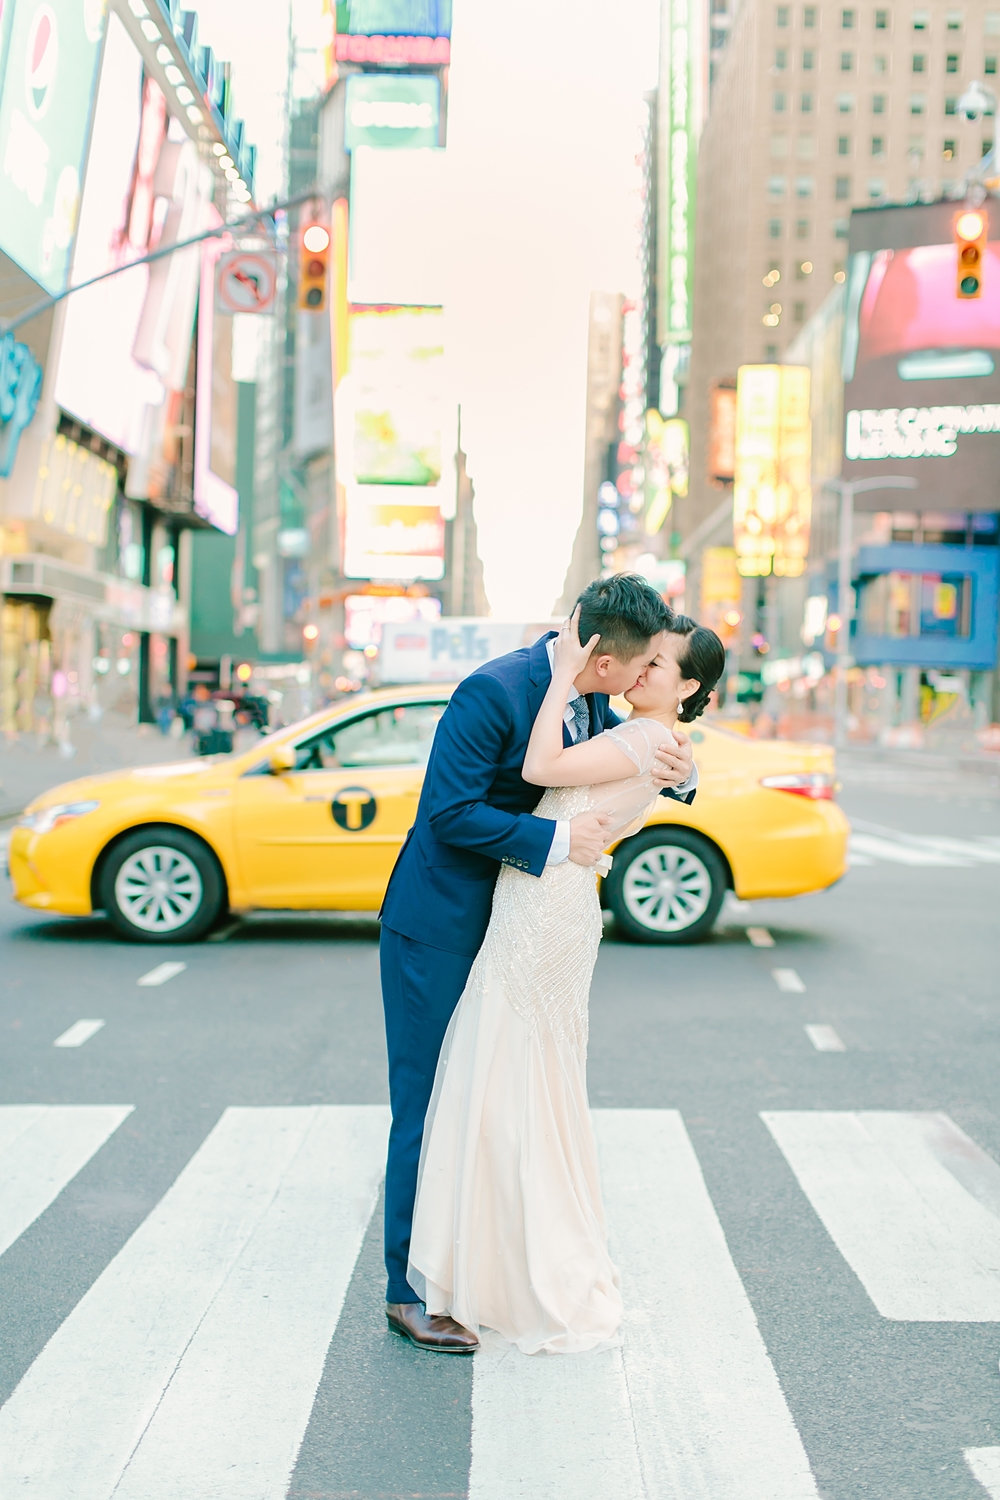 times_square_central_park_new_york_wedding_photos_0009.jpg